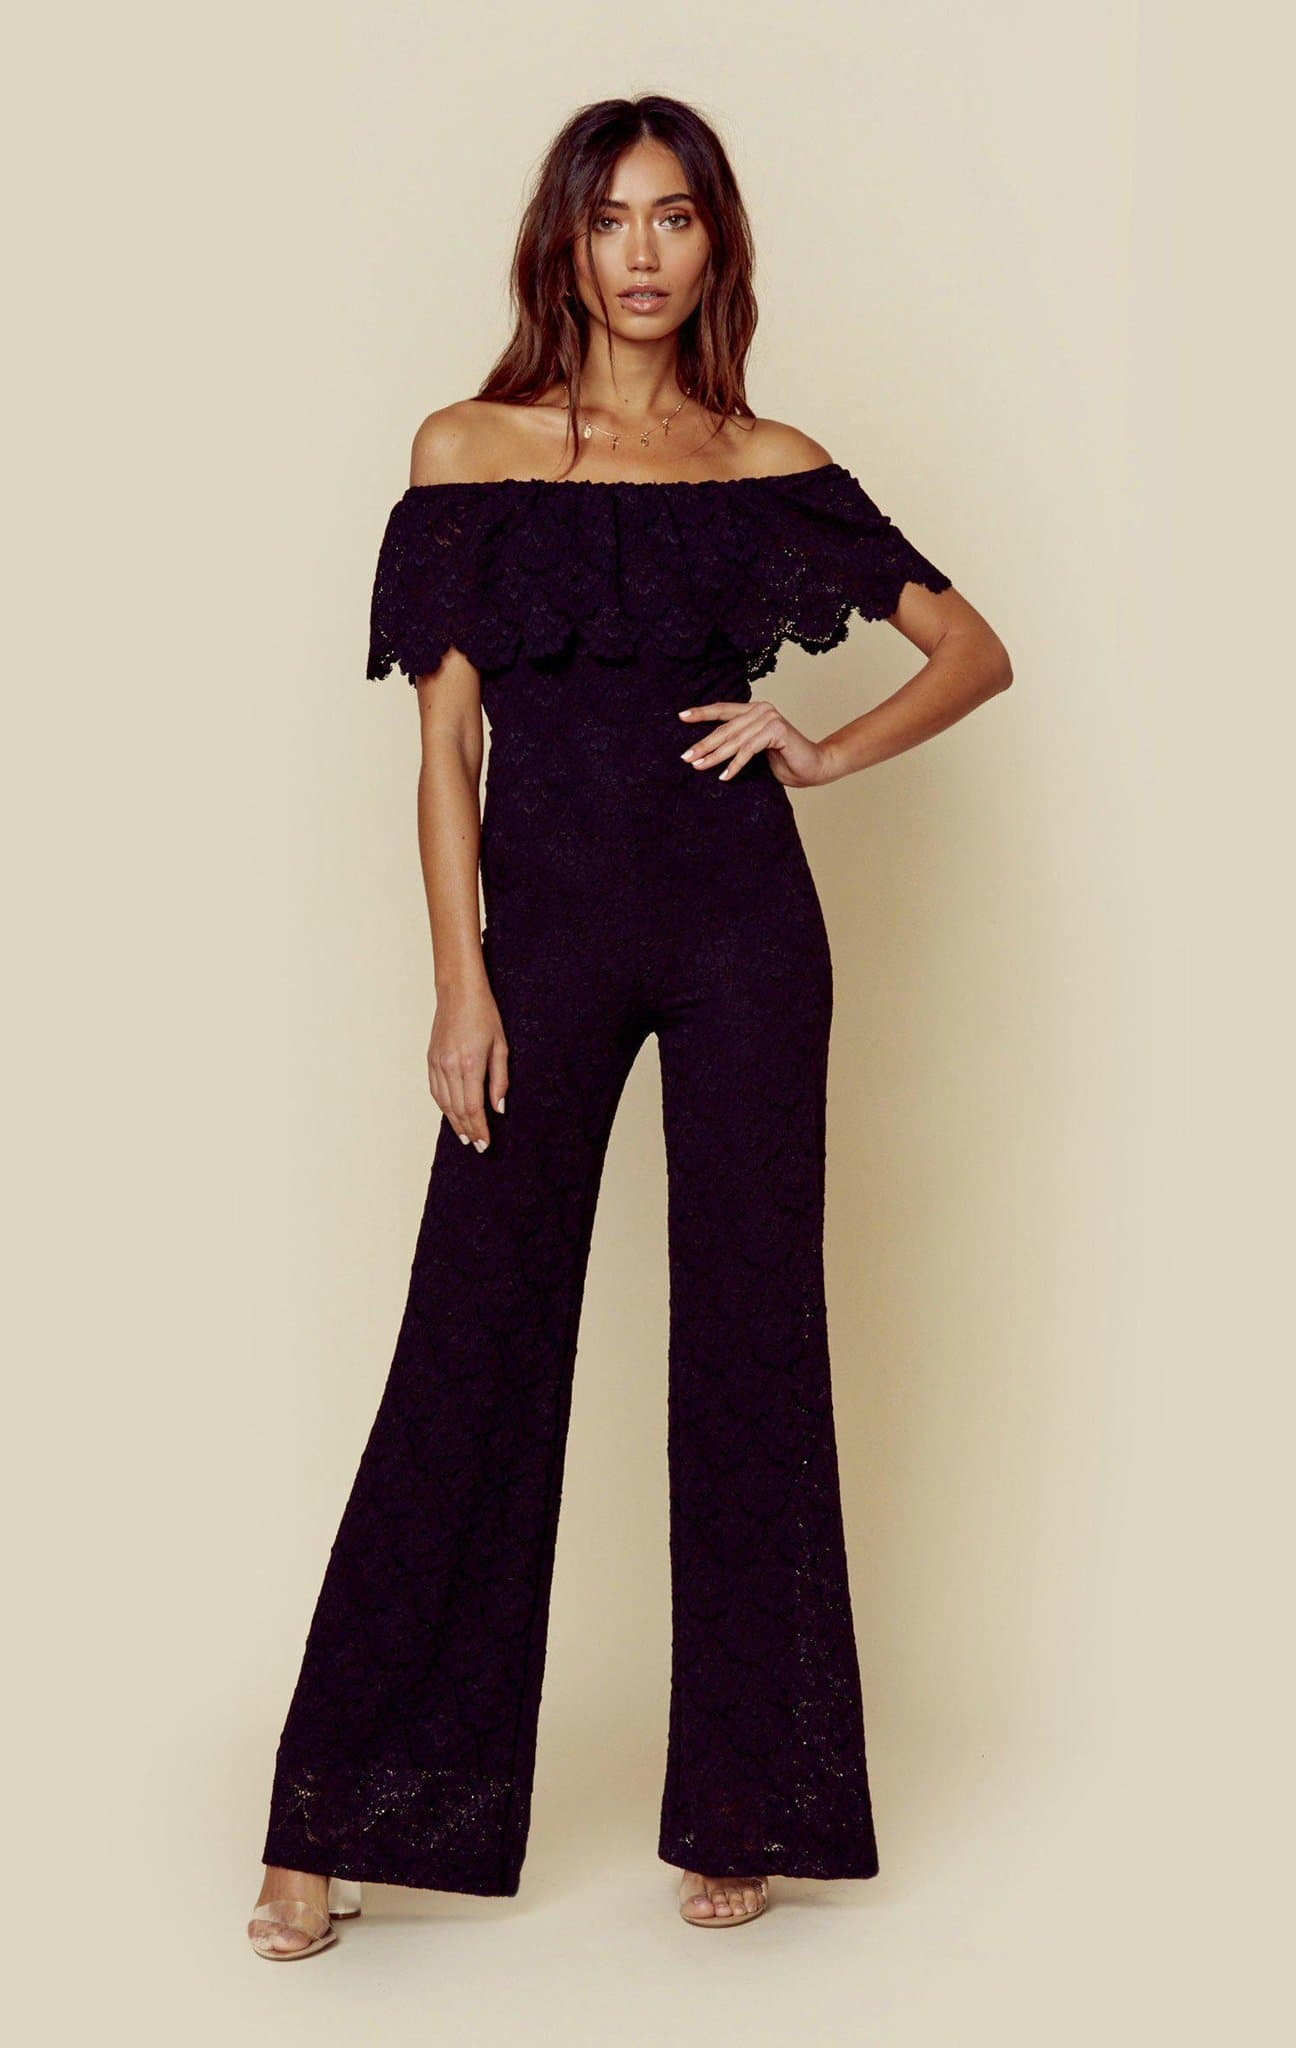 NIGHTCAP VICTORIAN FAN POSITANO JUMPSUIT - BLACK